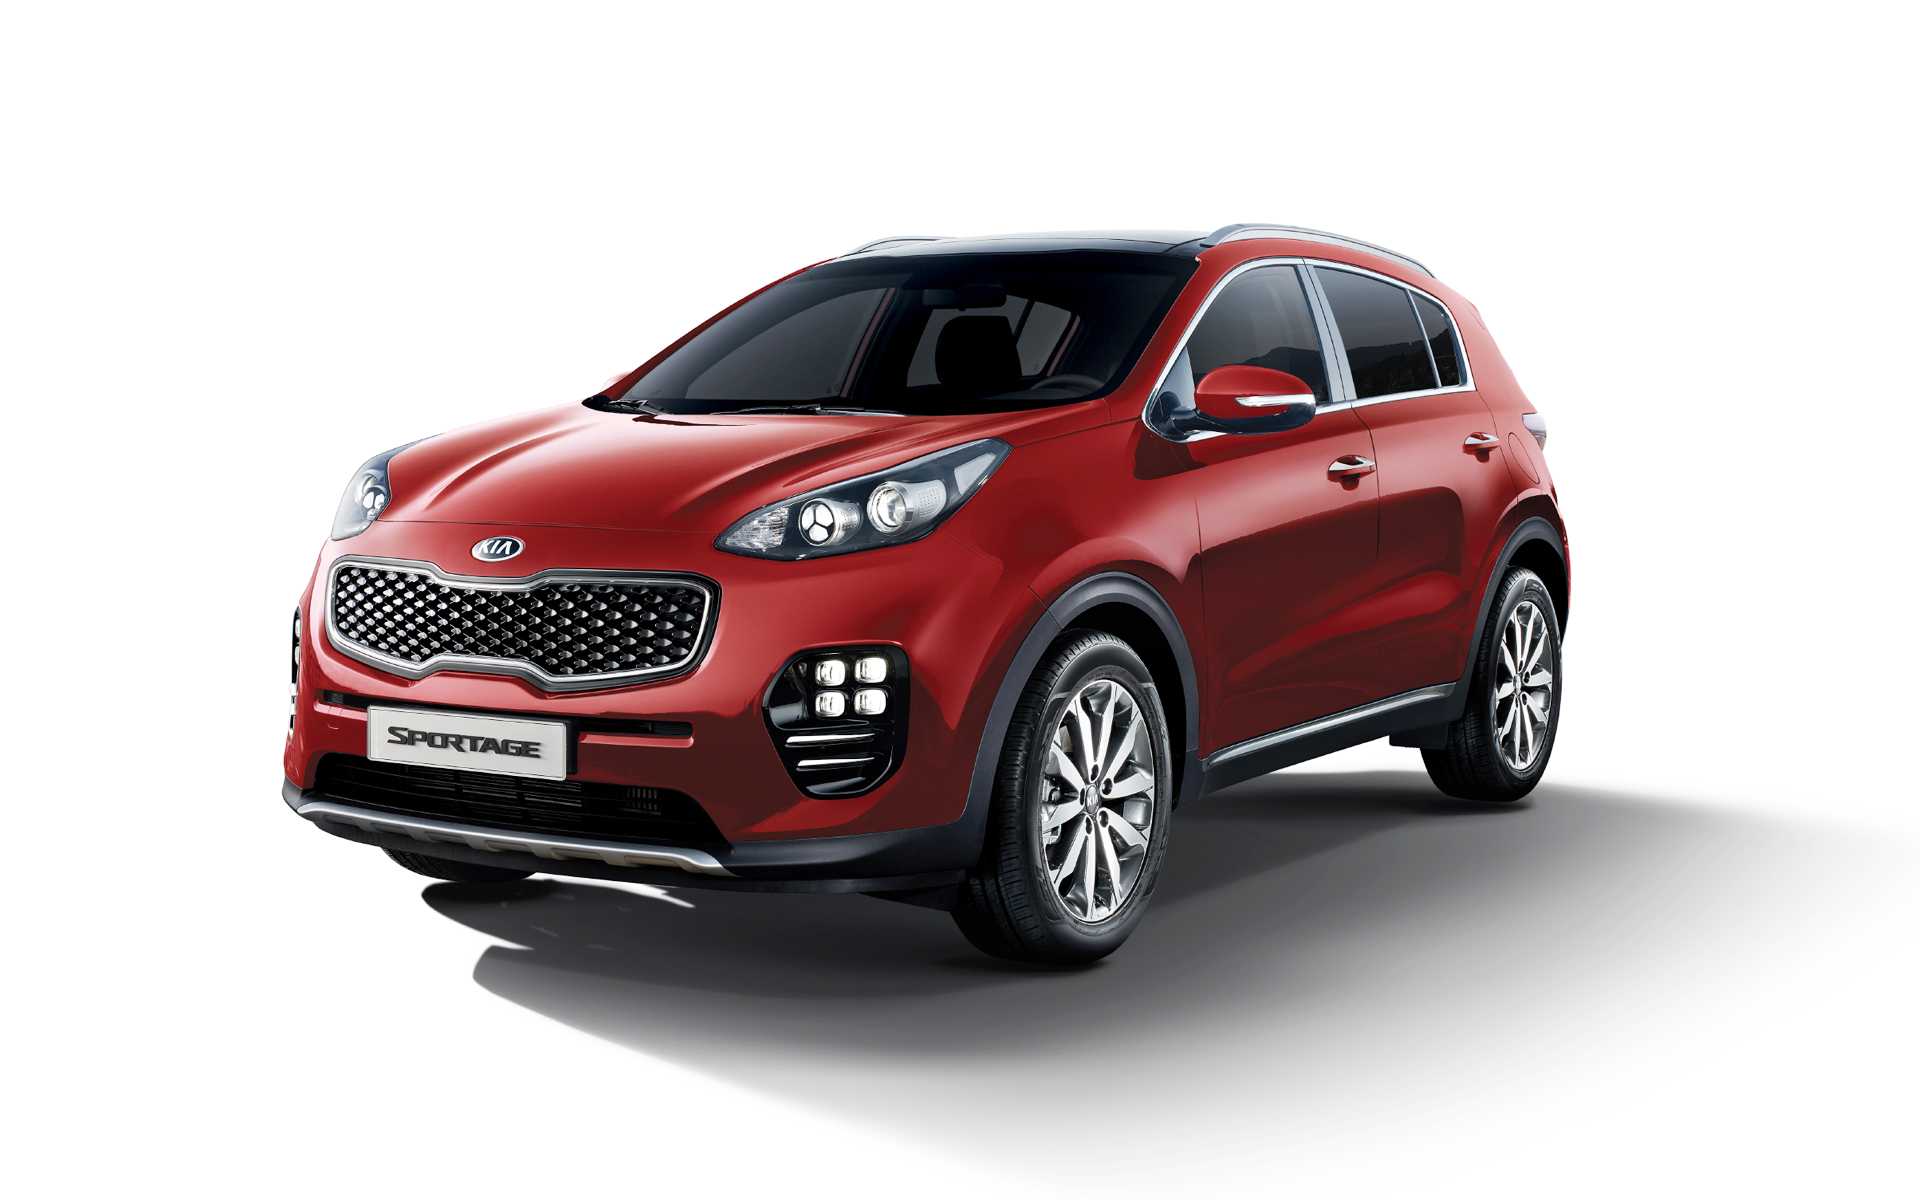 Kia Sportage 1.7 CRDi Launched in South Korea